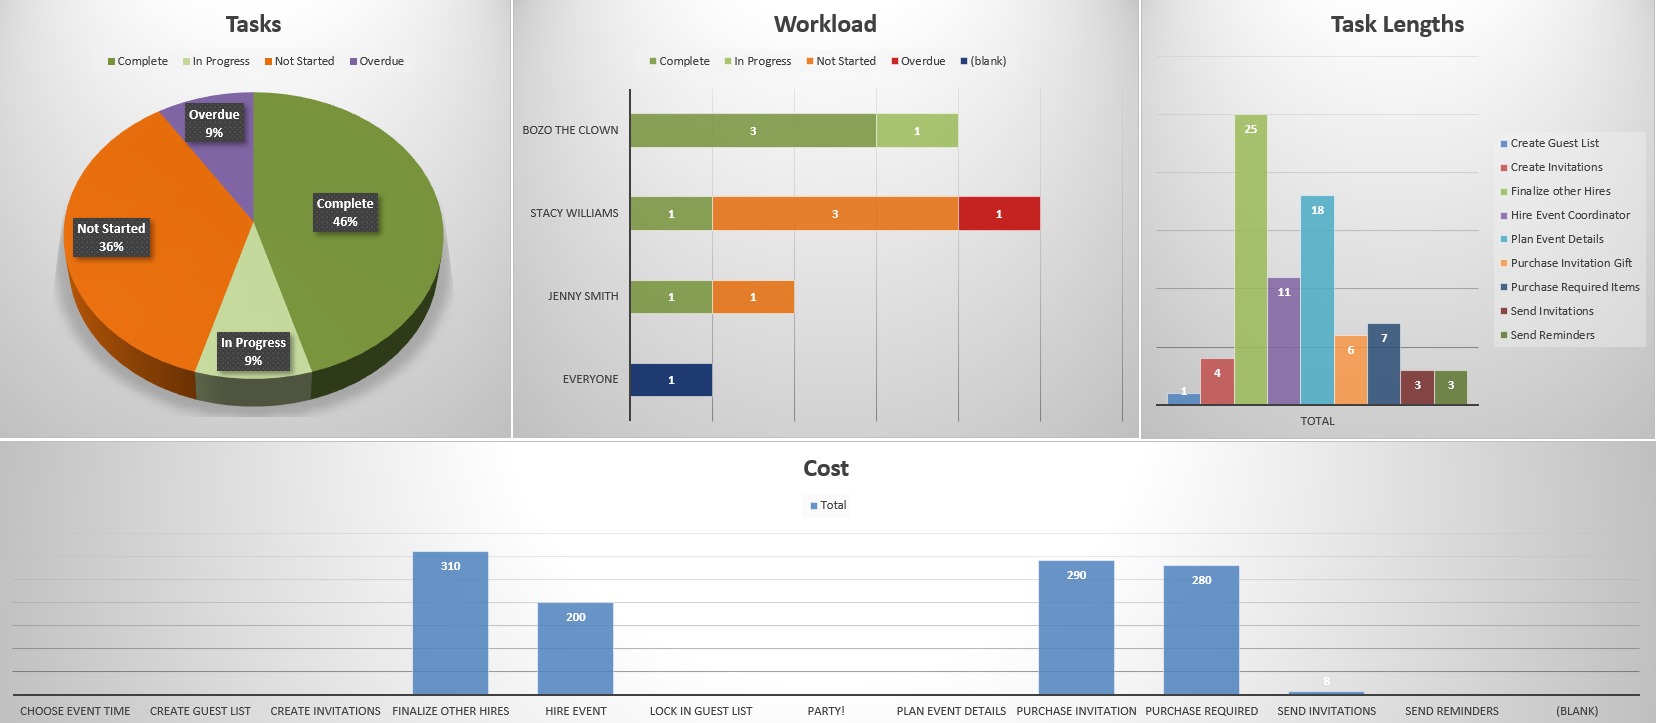 Project Management Dashboard Template featuring tasks, workload, task lengths and costs